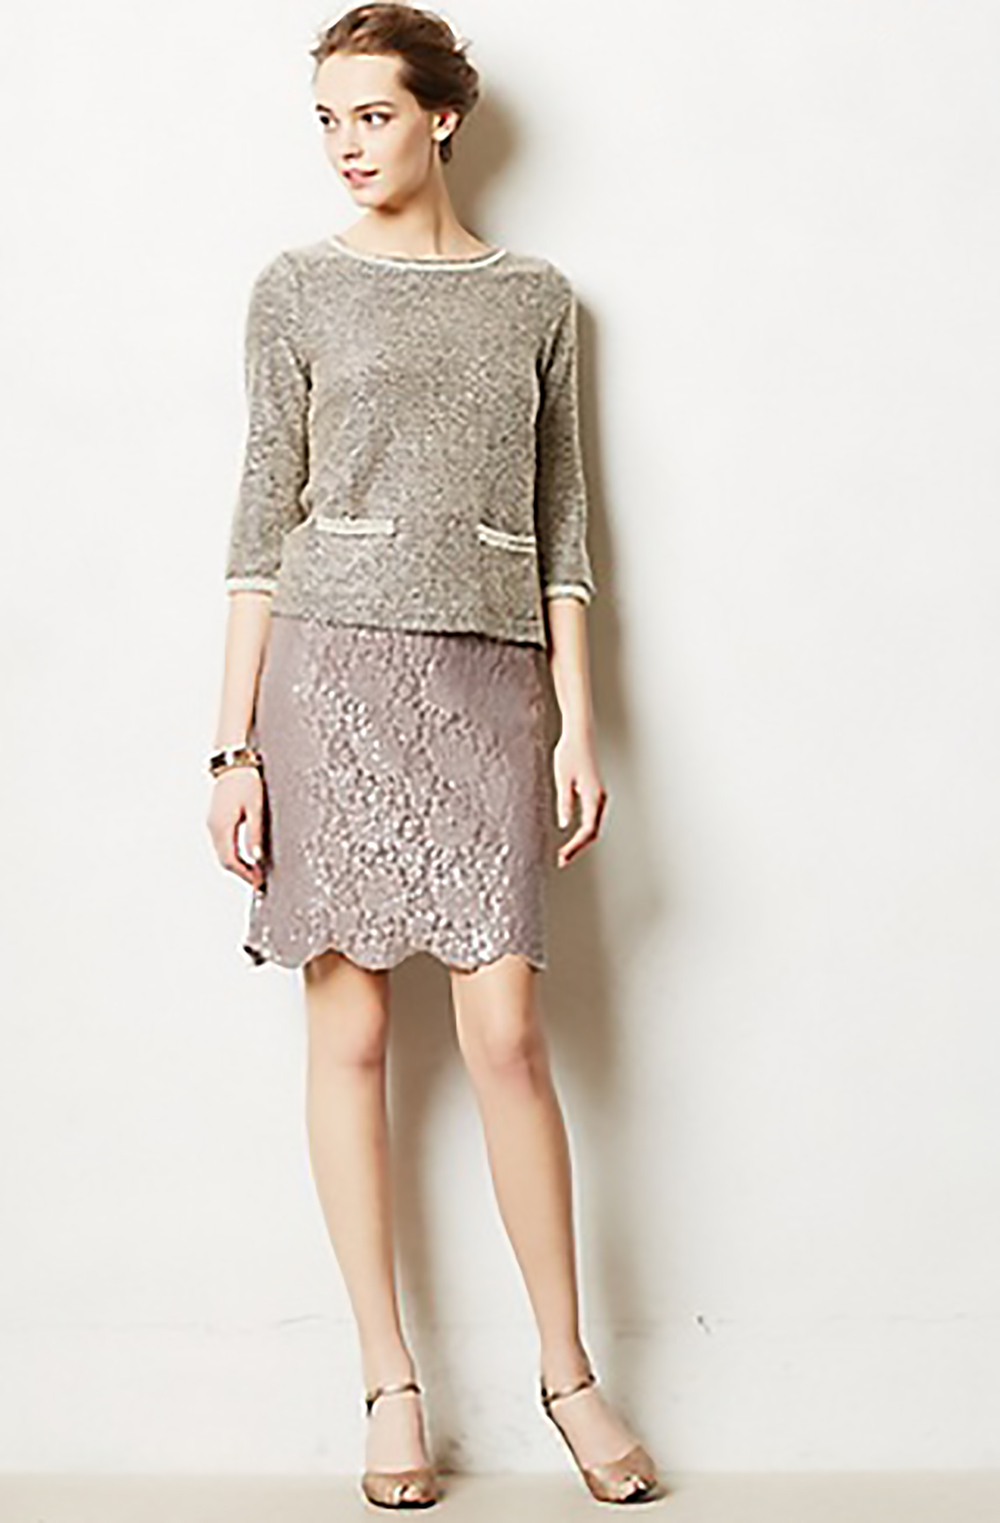 anthropologie reveillon pencil skirt holiday separates 1500.jpg